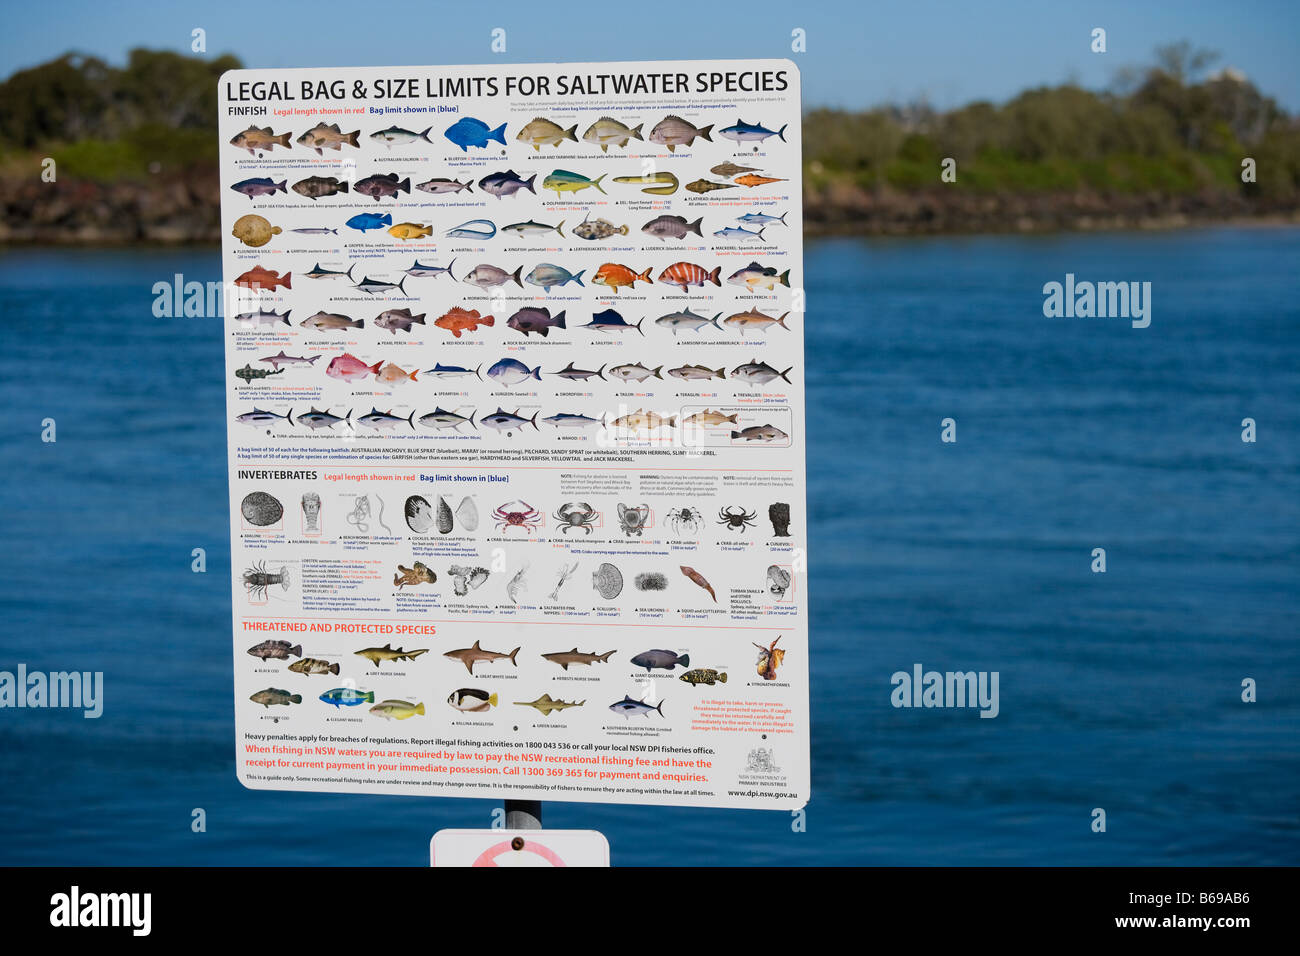 Legal bag and size limits for saltwater fish fishing on the Australian Pacific Ocean's Gold Coast in Coolangatta - Stock Image